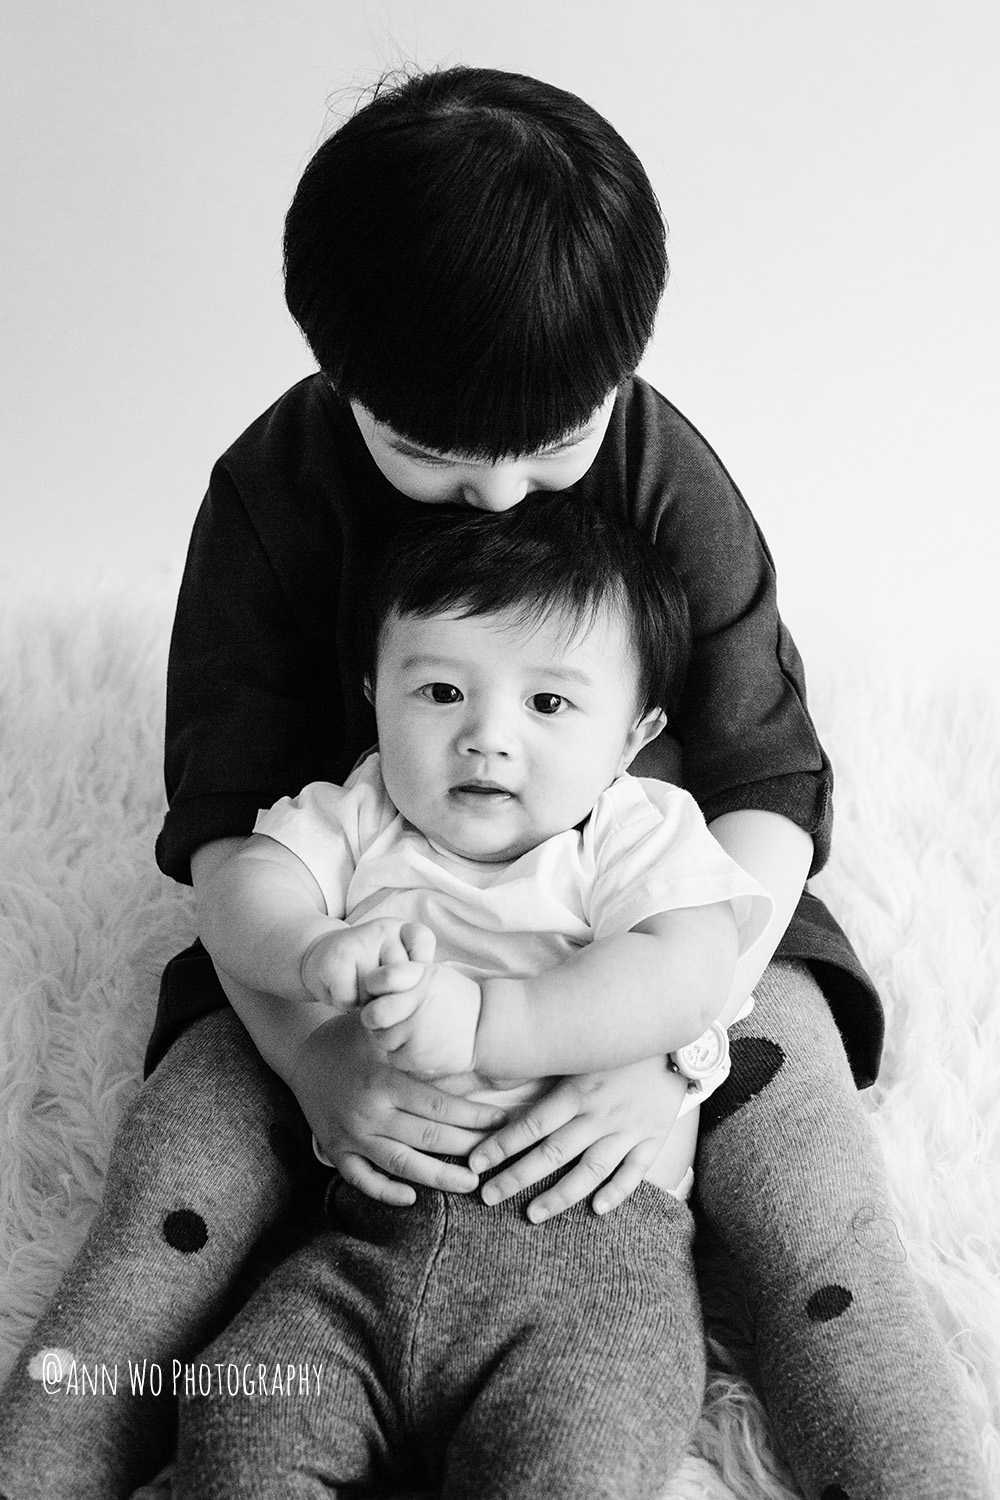 family-photography-london-ann-wo-toddler-baby-3205.jpg